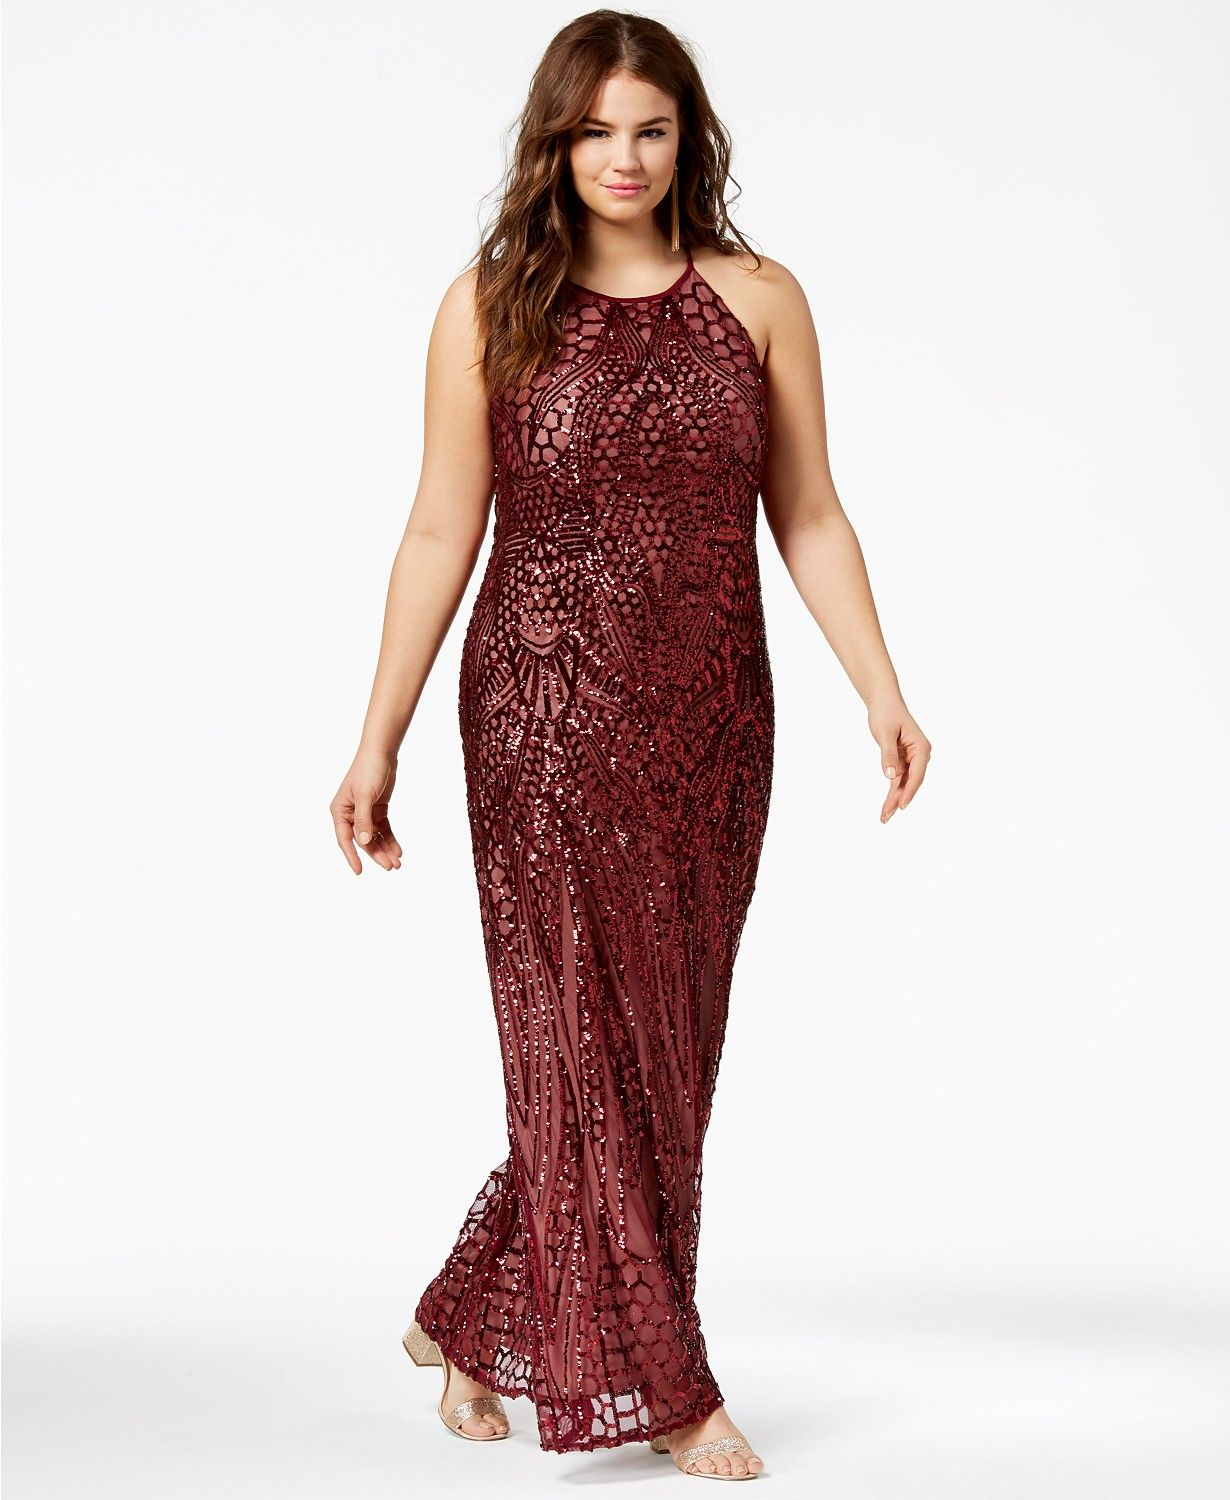 cf8394716a0 Morgan   Company Trendy Plus Size Sequin-Patterned Backless Gown - Dresses  - Plus Sizes - Macy s